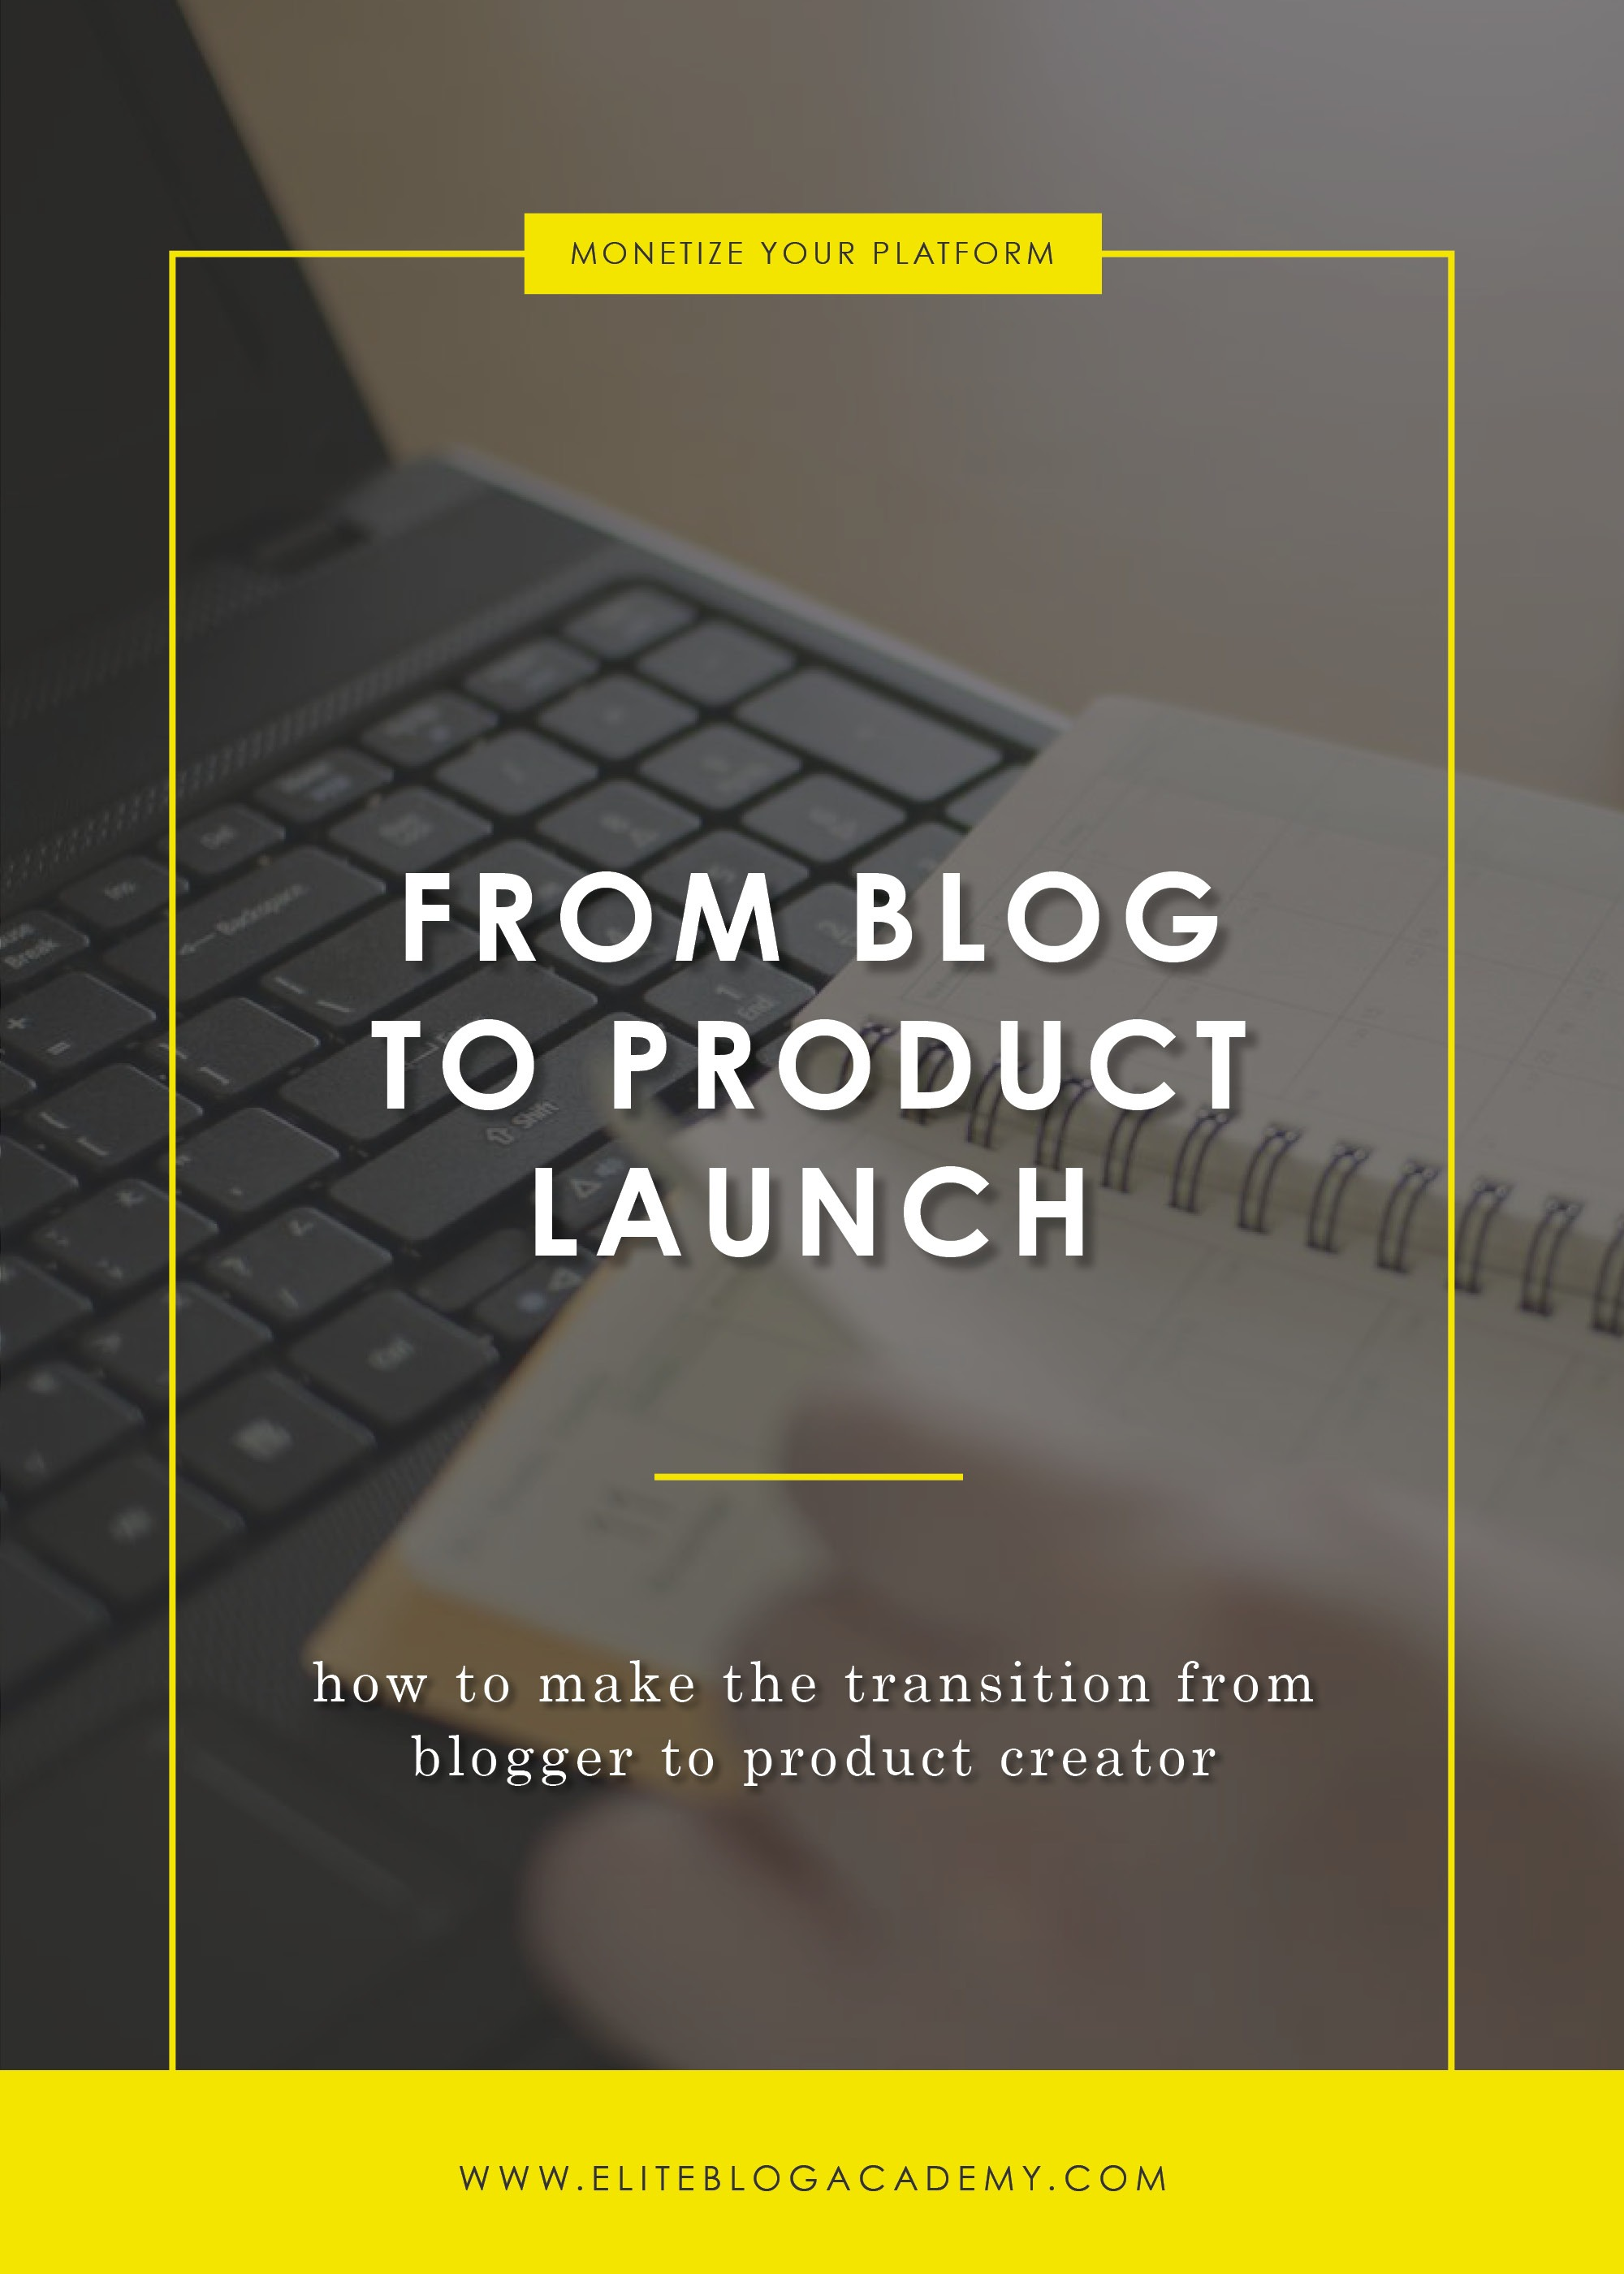 From Blog to Product Launch